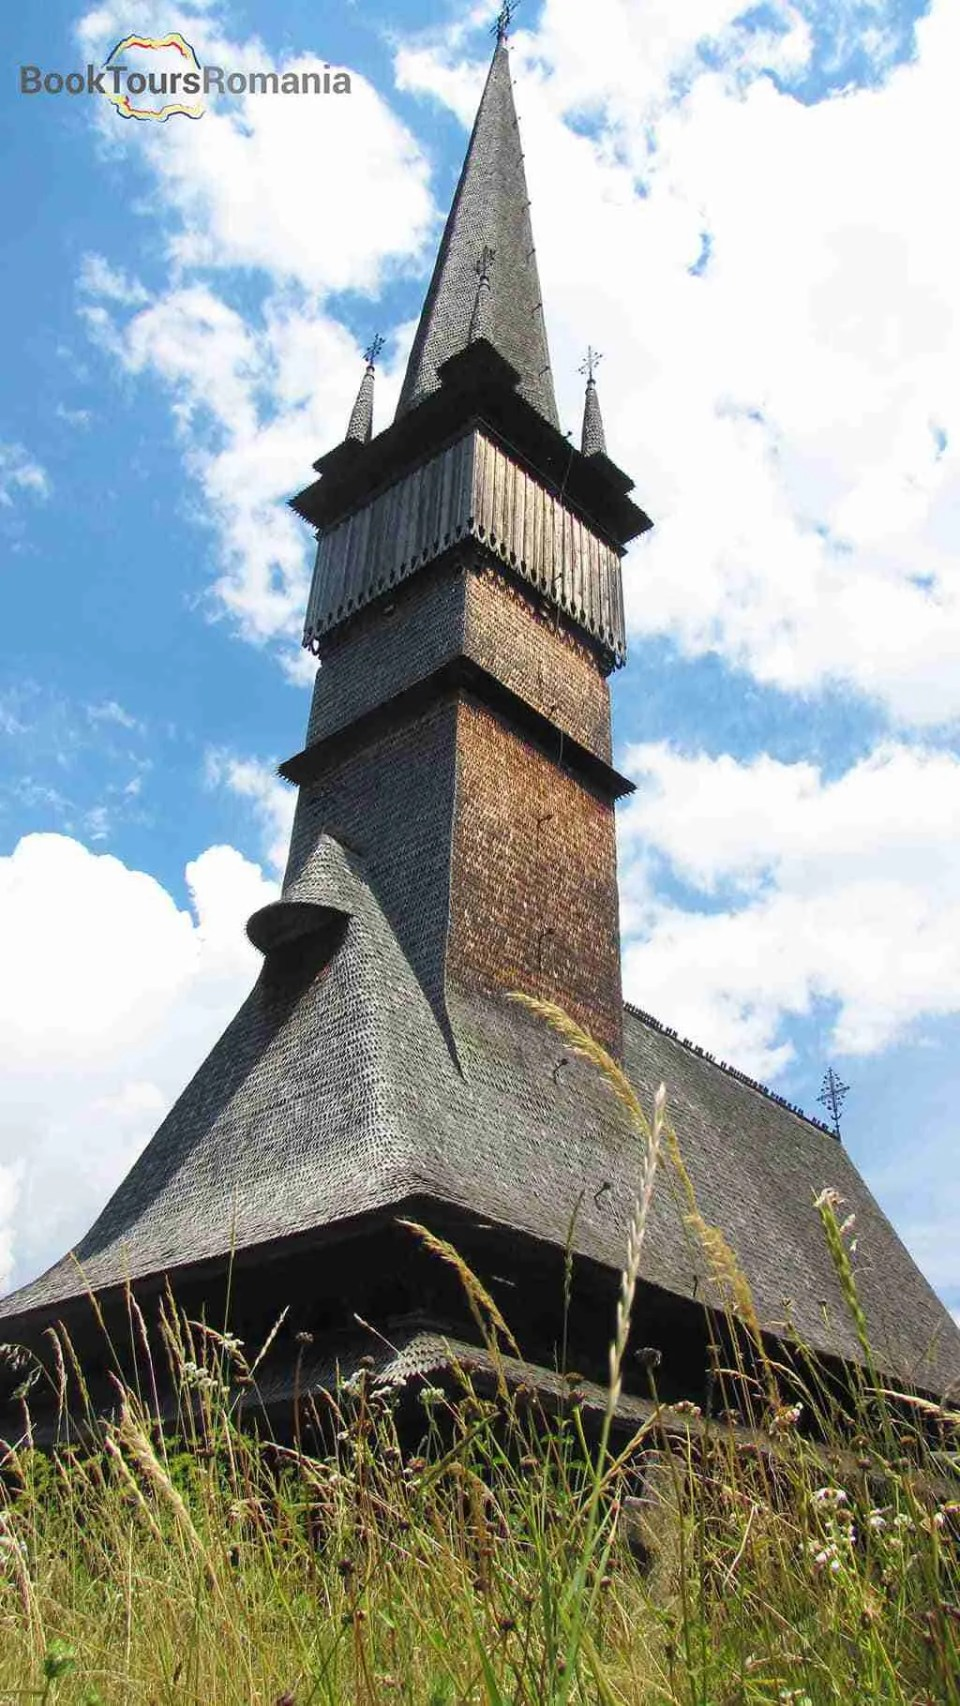 Surdesti - the tallest wooden church